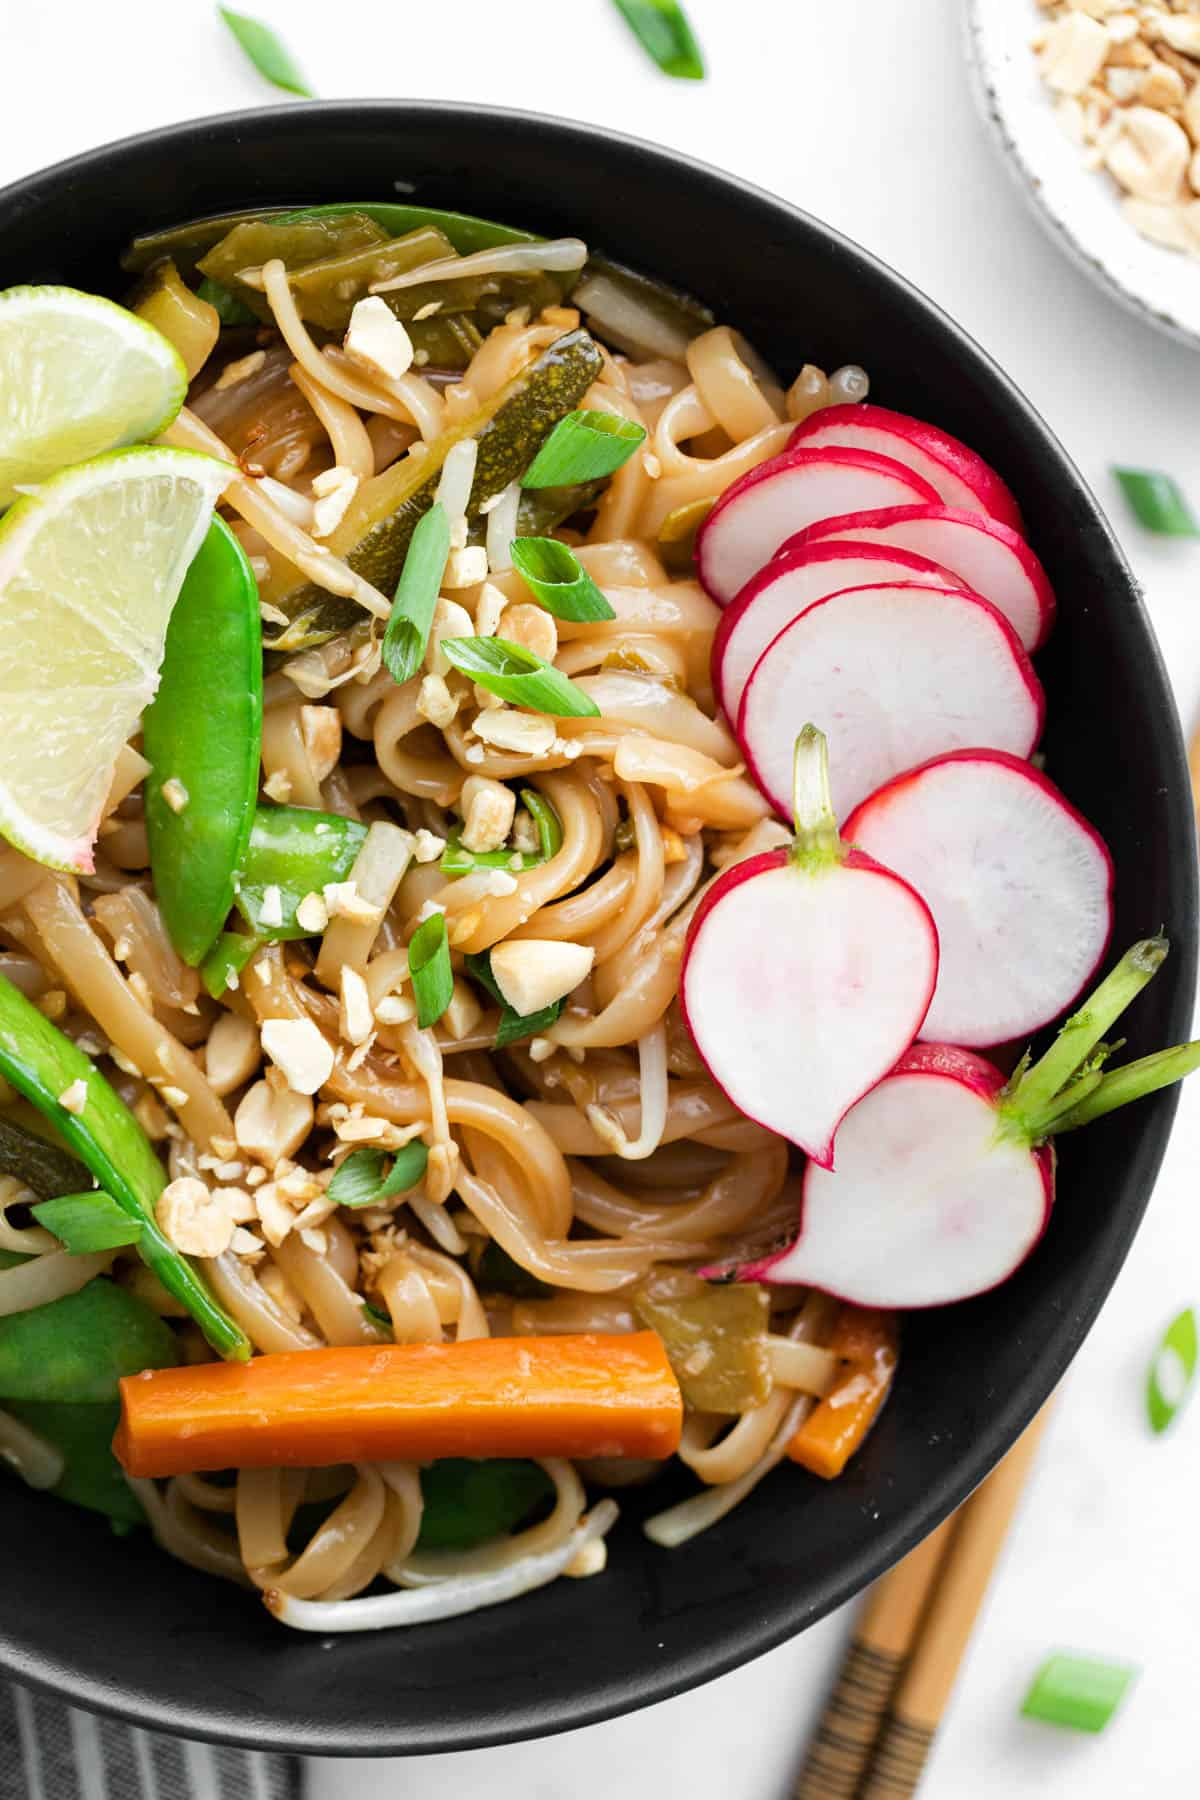 A close-up of a bowl of vegetarian pad thai with noodles with noodles, snow peas, green onions, carrots, radish and lime.